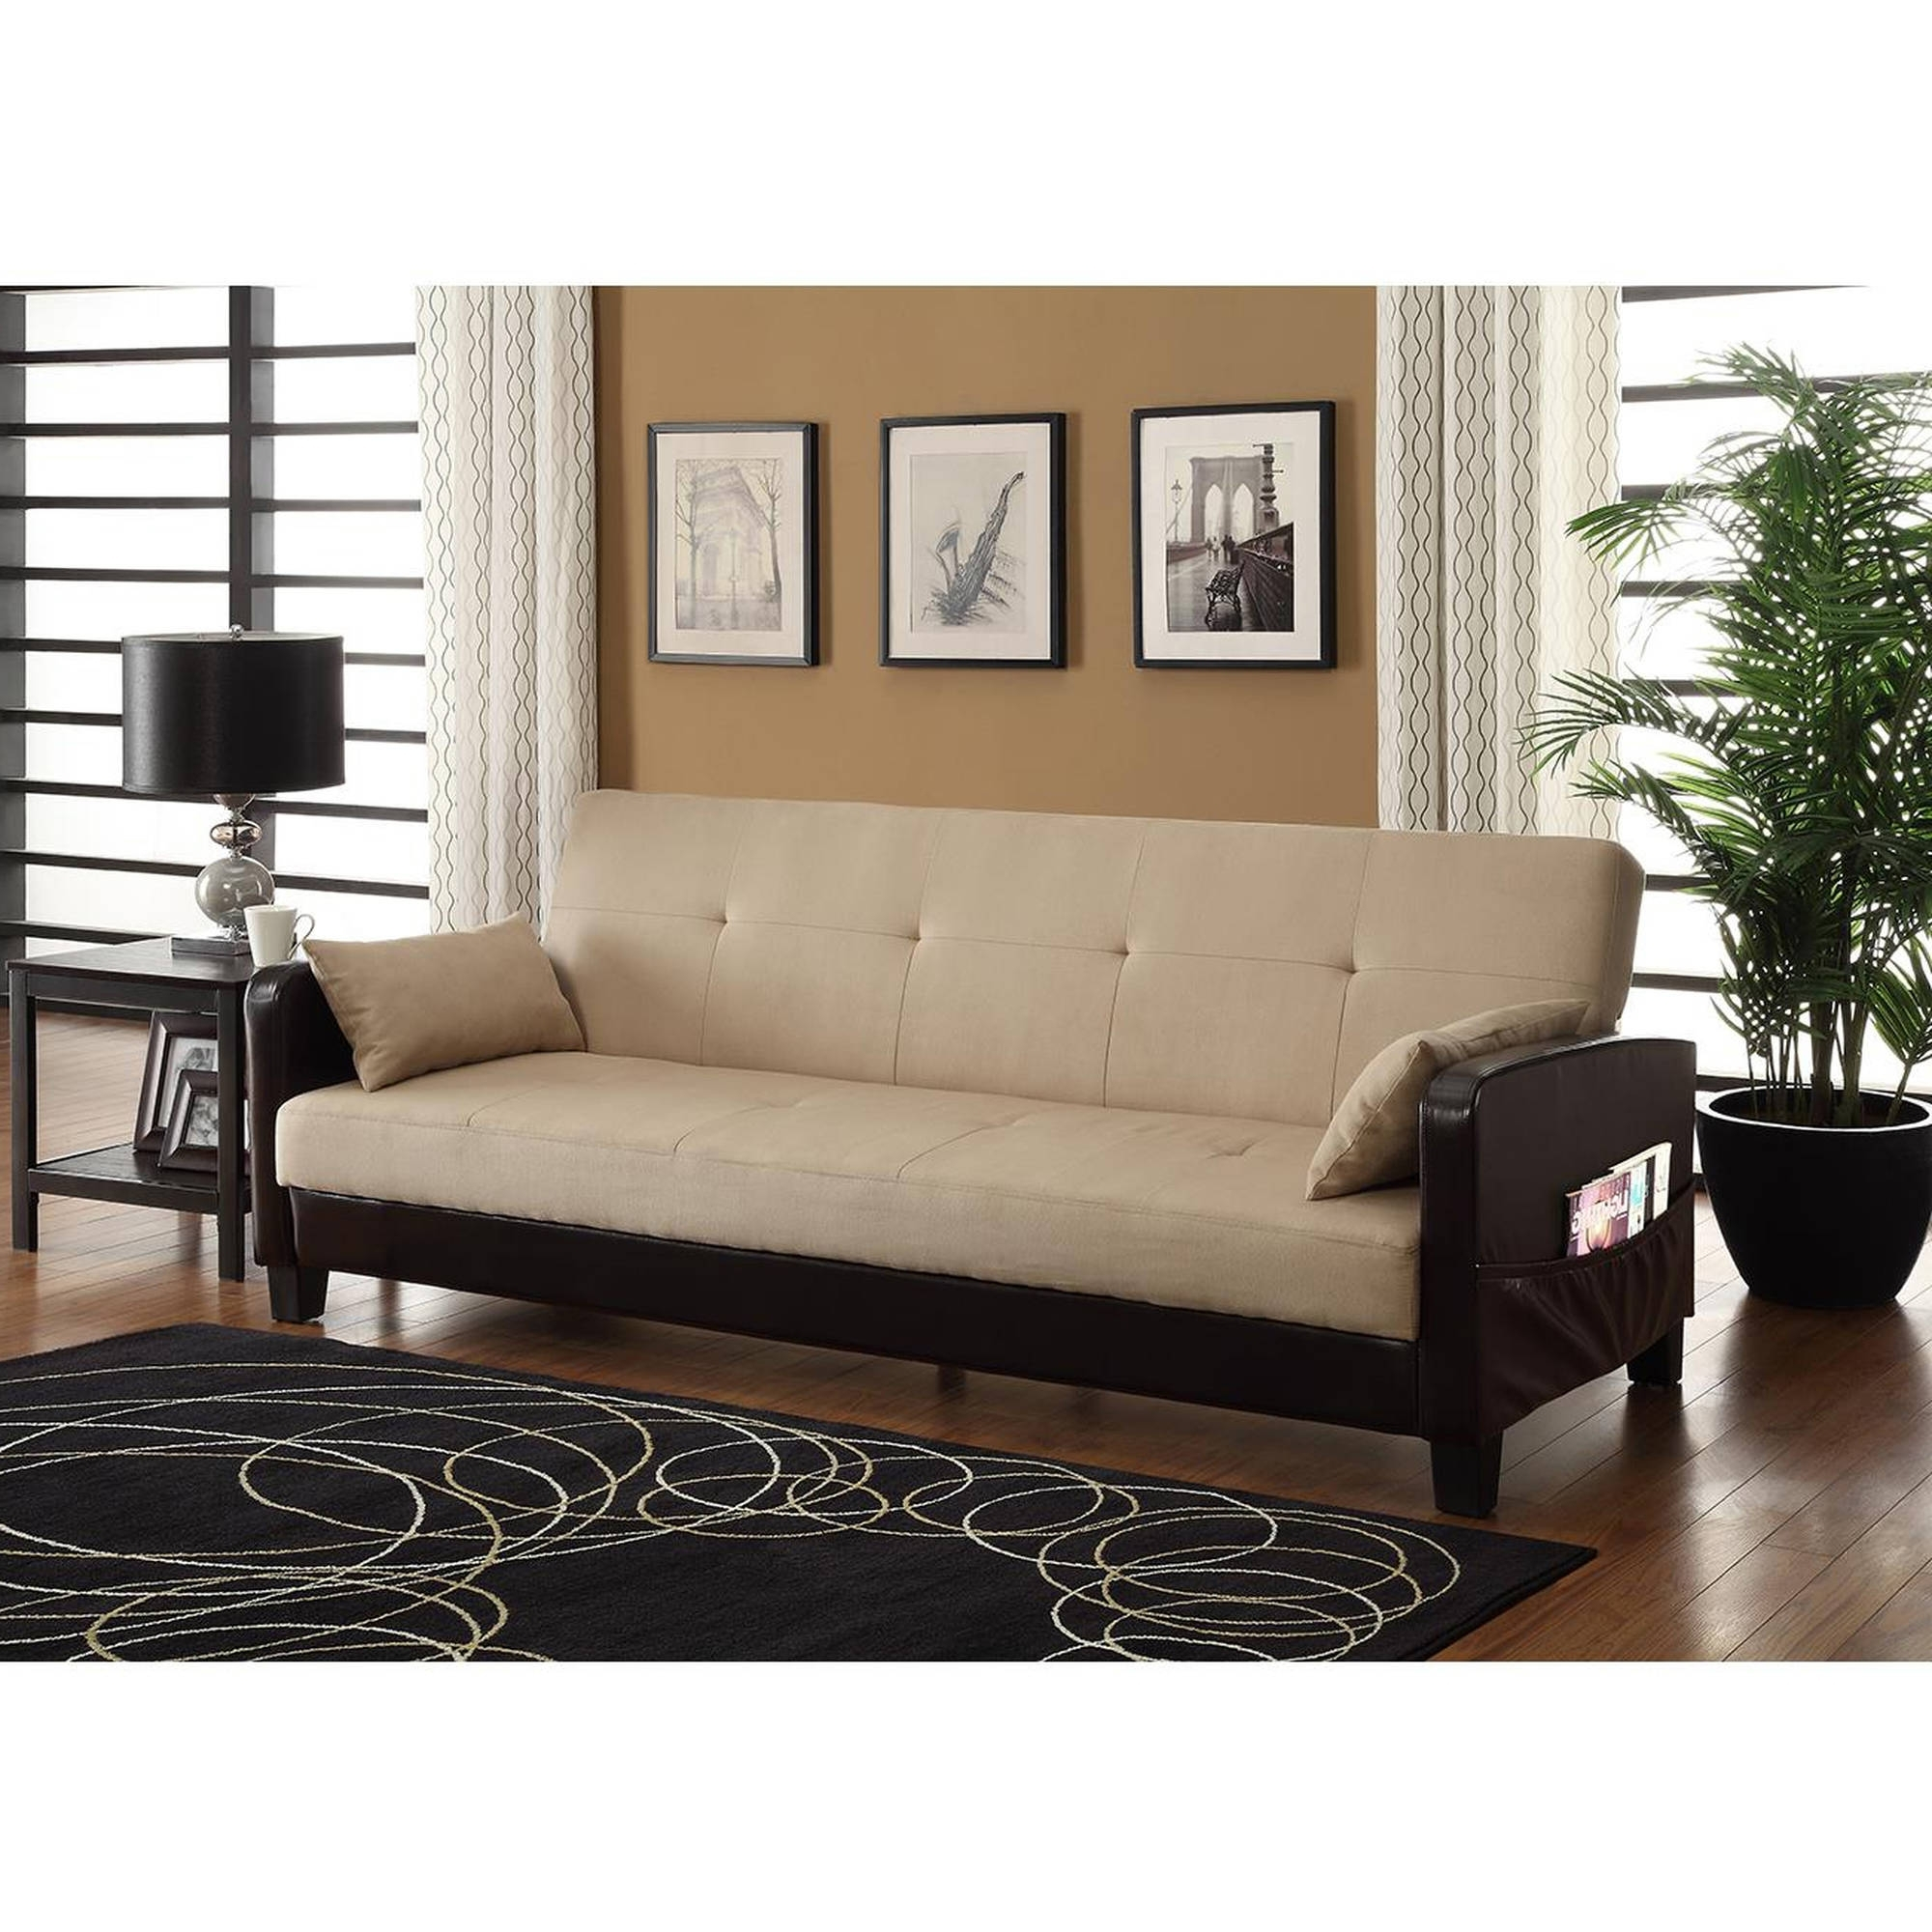 Most Popular Pittsburgh Sectional Sofas With Regard To Sofa Sleepers Under $ (View 5 of 20)